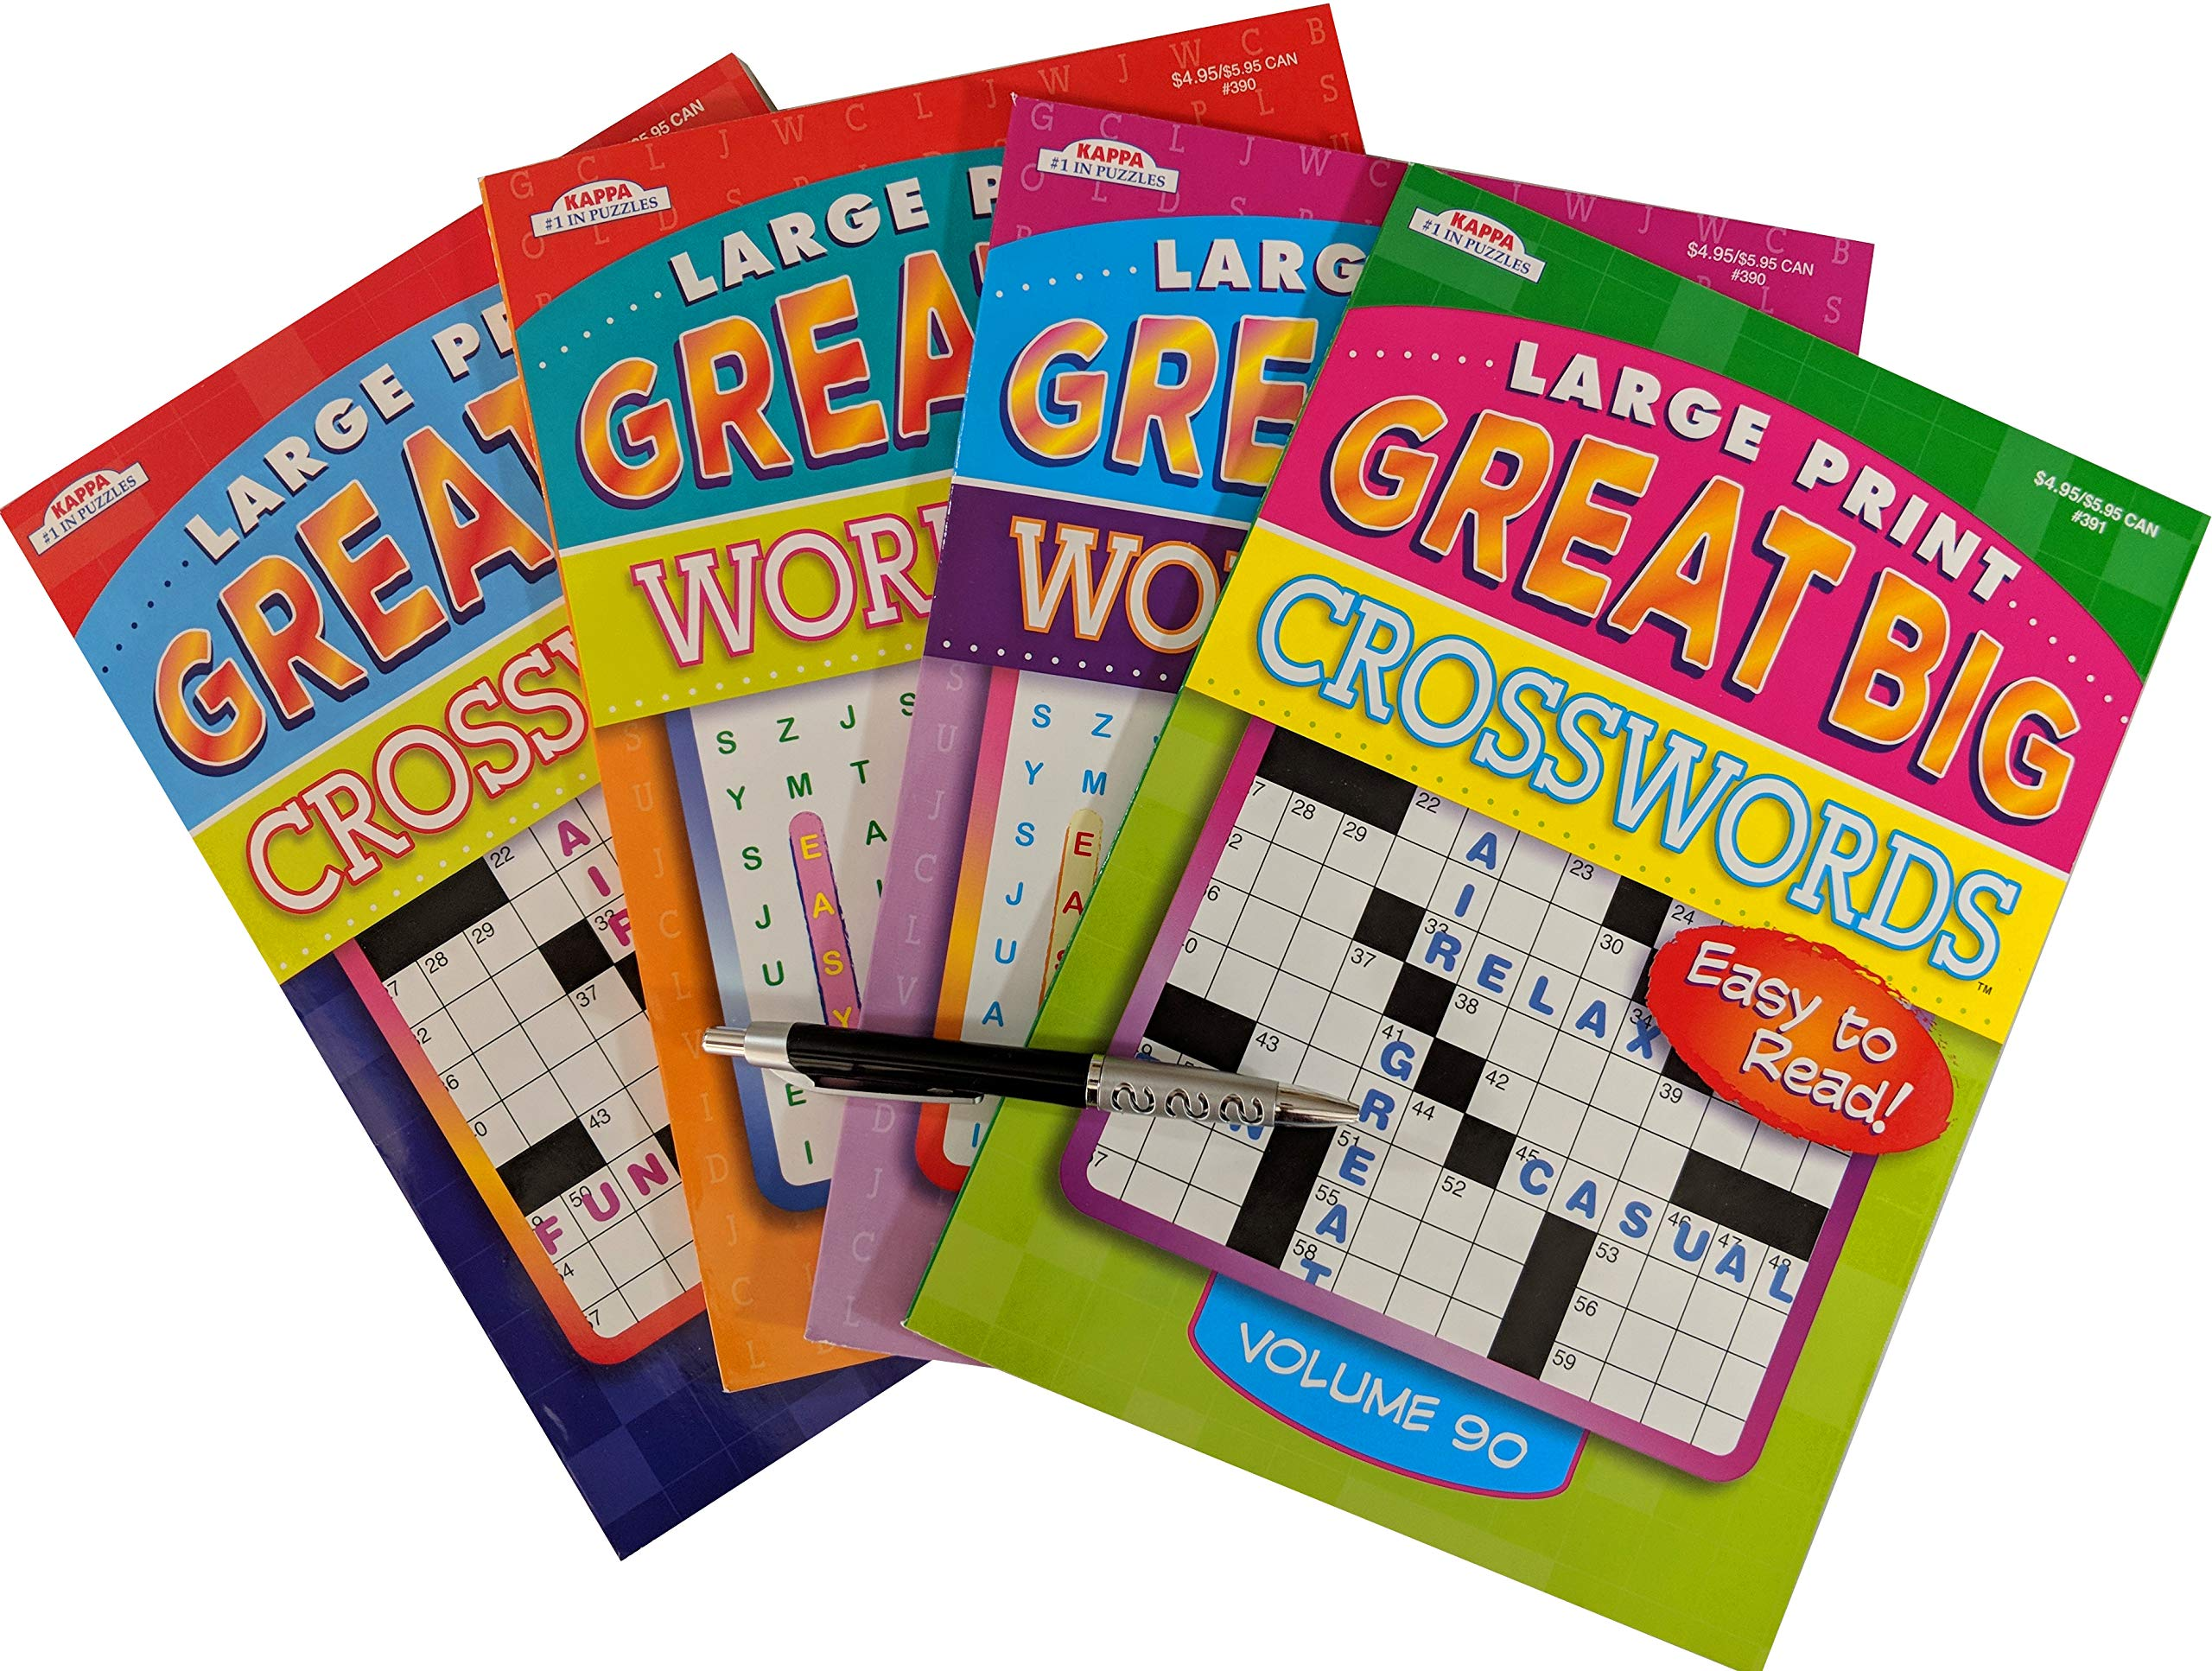 Large Print Puzzle Books Pack for Seniors: 2 Great Big Crossword and 2 Great Big Word Find Puzzles